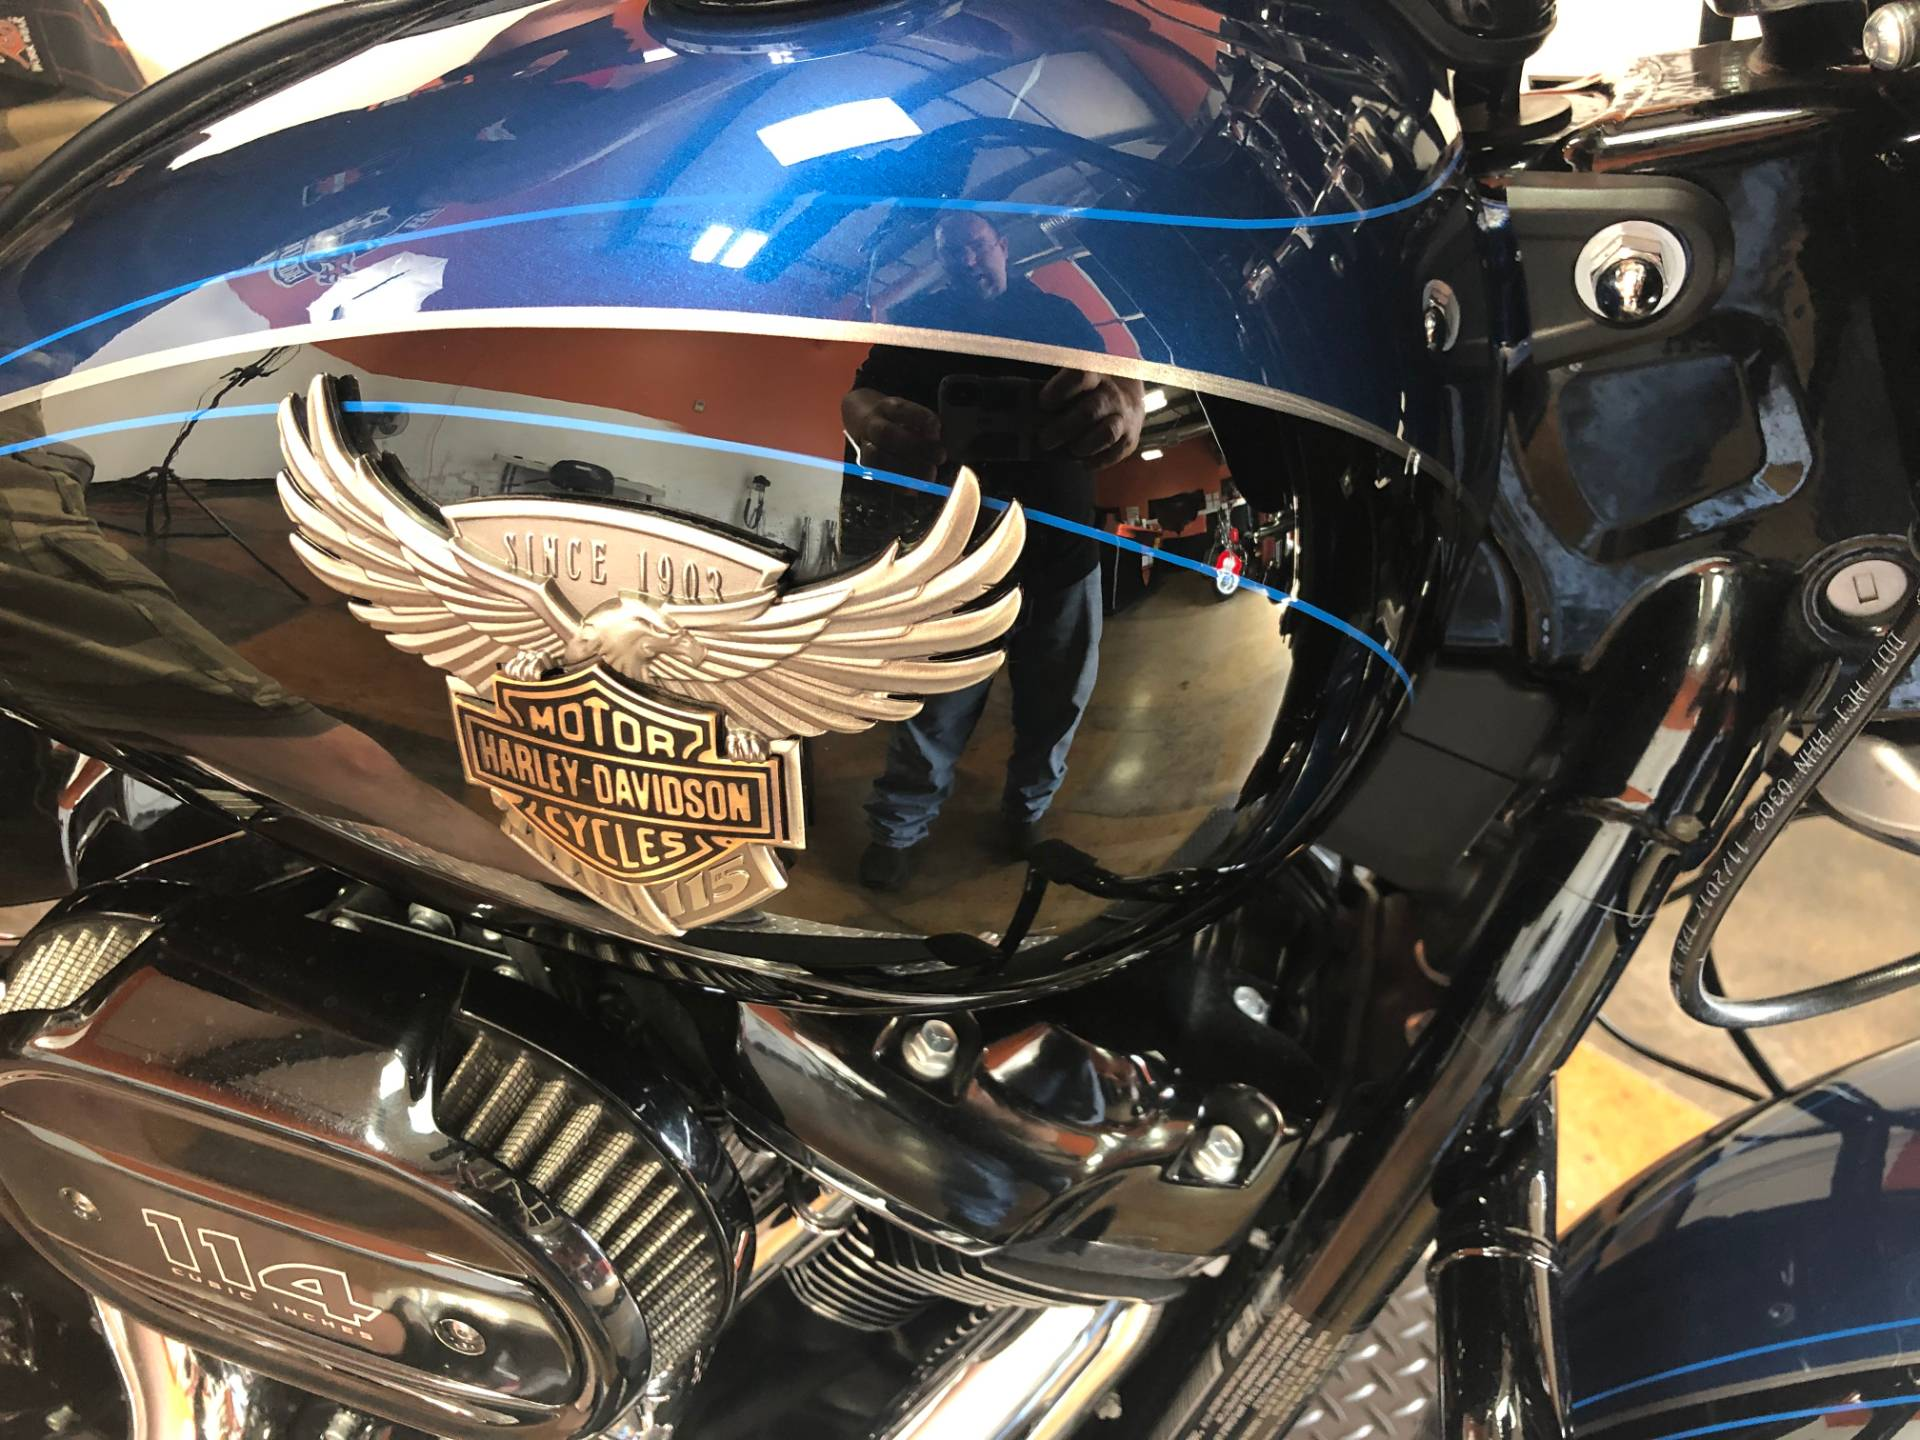 2018 Harley-Davidson Heritage Classic 114 in Marion, Illinois - Photo 2